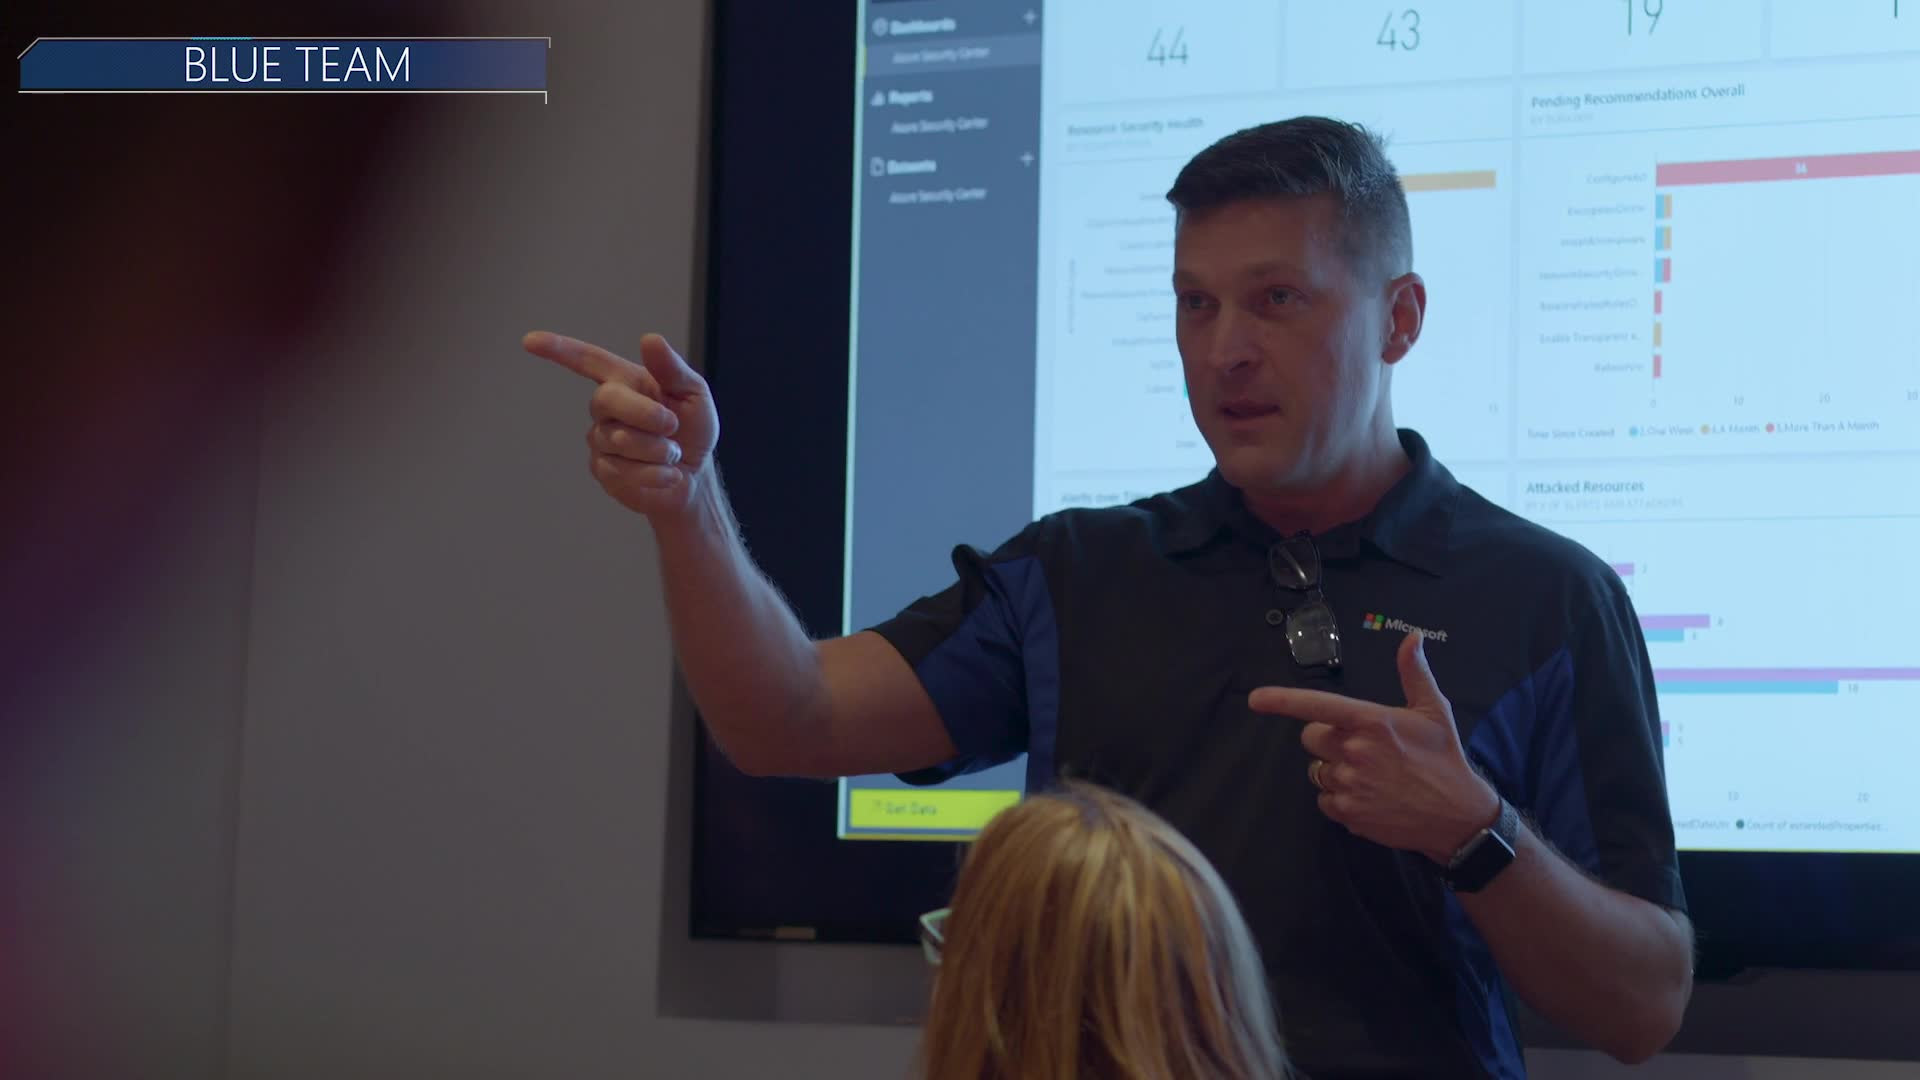 """Still image from video showing a person at the front of the room giving a presentation in front of a large screen with various charts on it. The words """"Blue Team"""" appear on the top left corner of the image."""